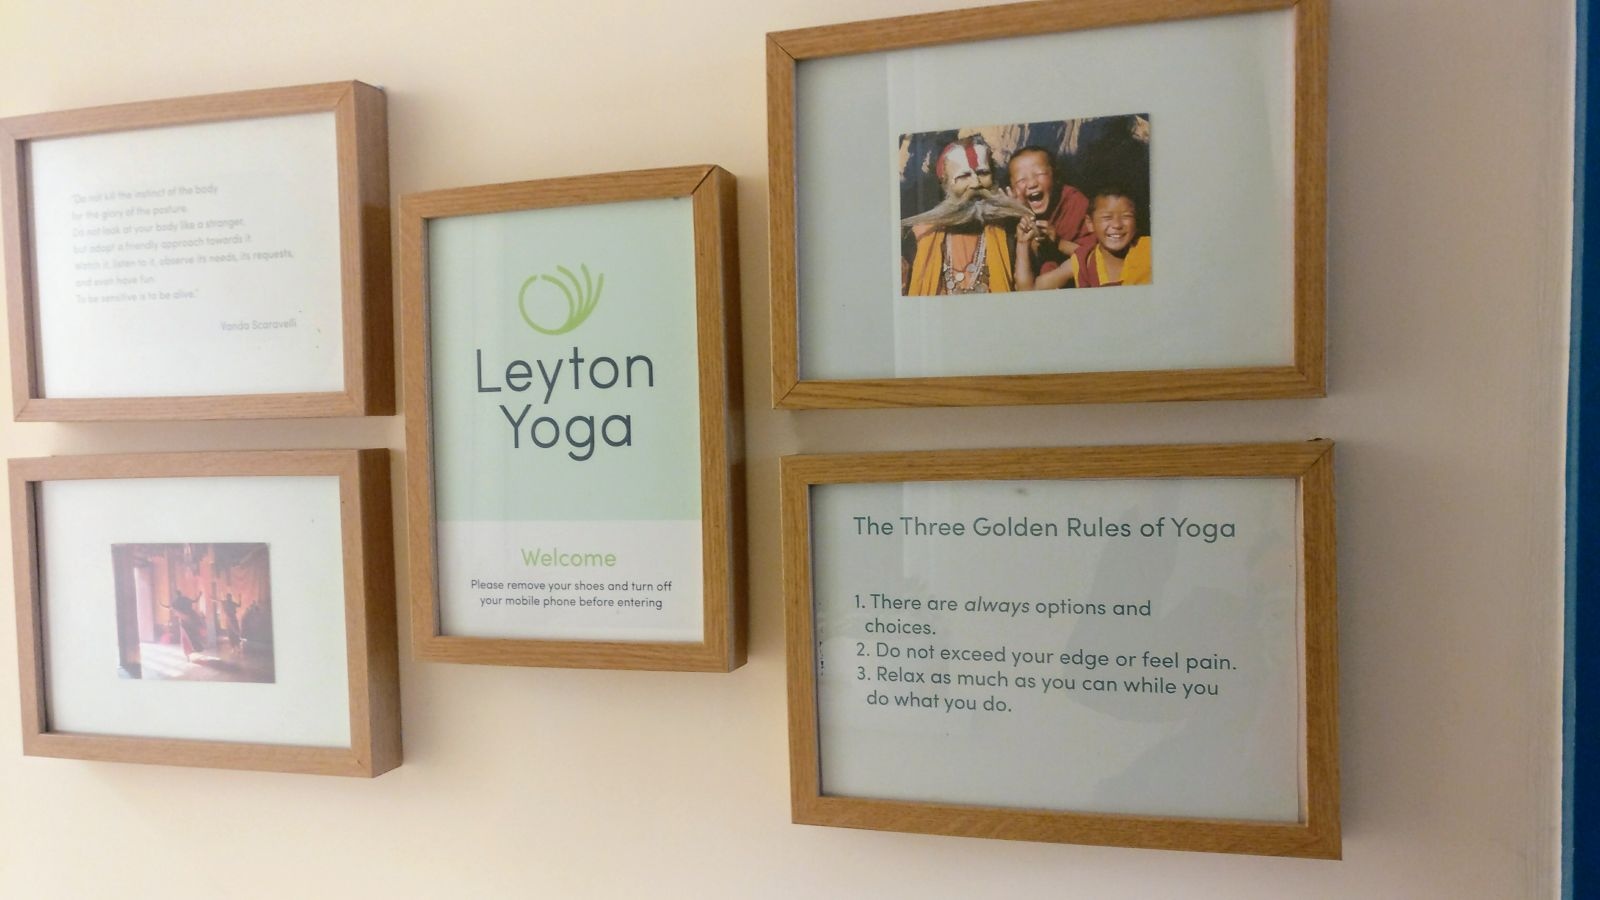 20181127 Leyton Yoga Studio - door signs